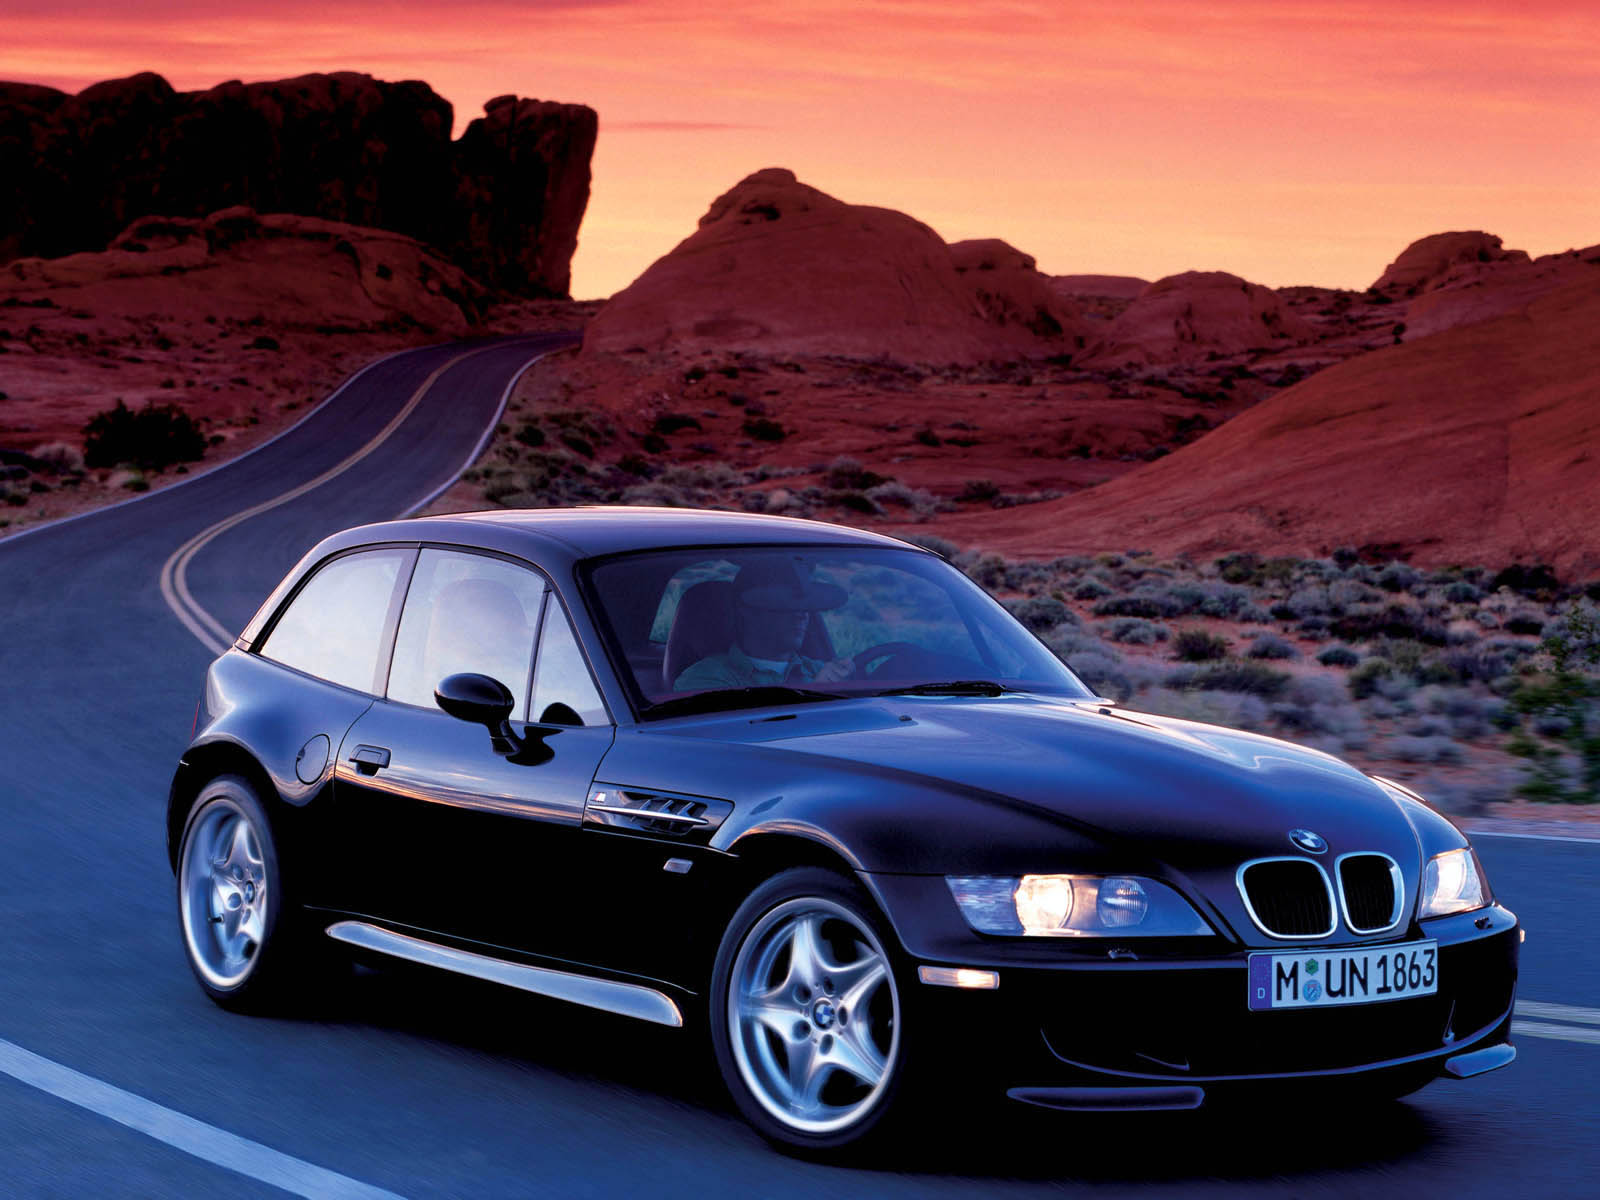 Z3-Coupe-M.jpg